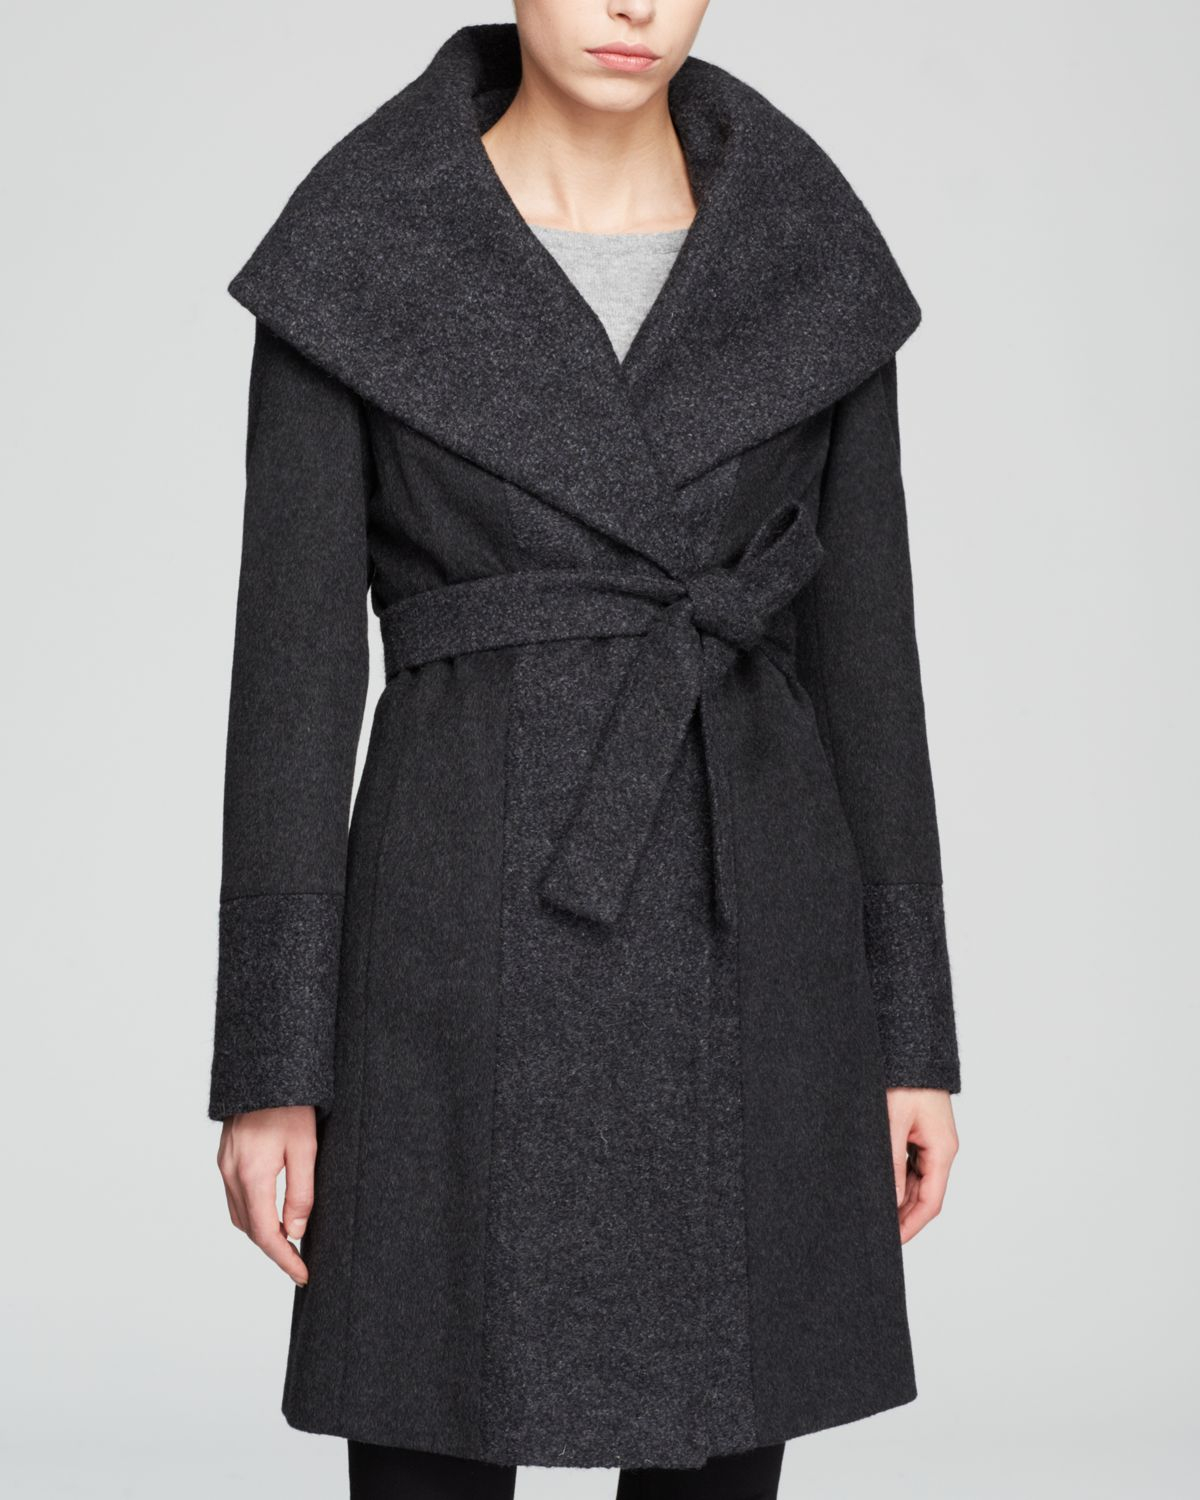 Calvin klein womens coat